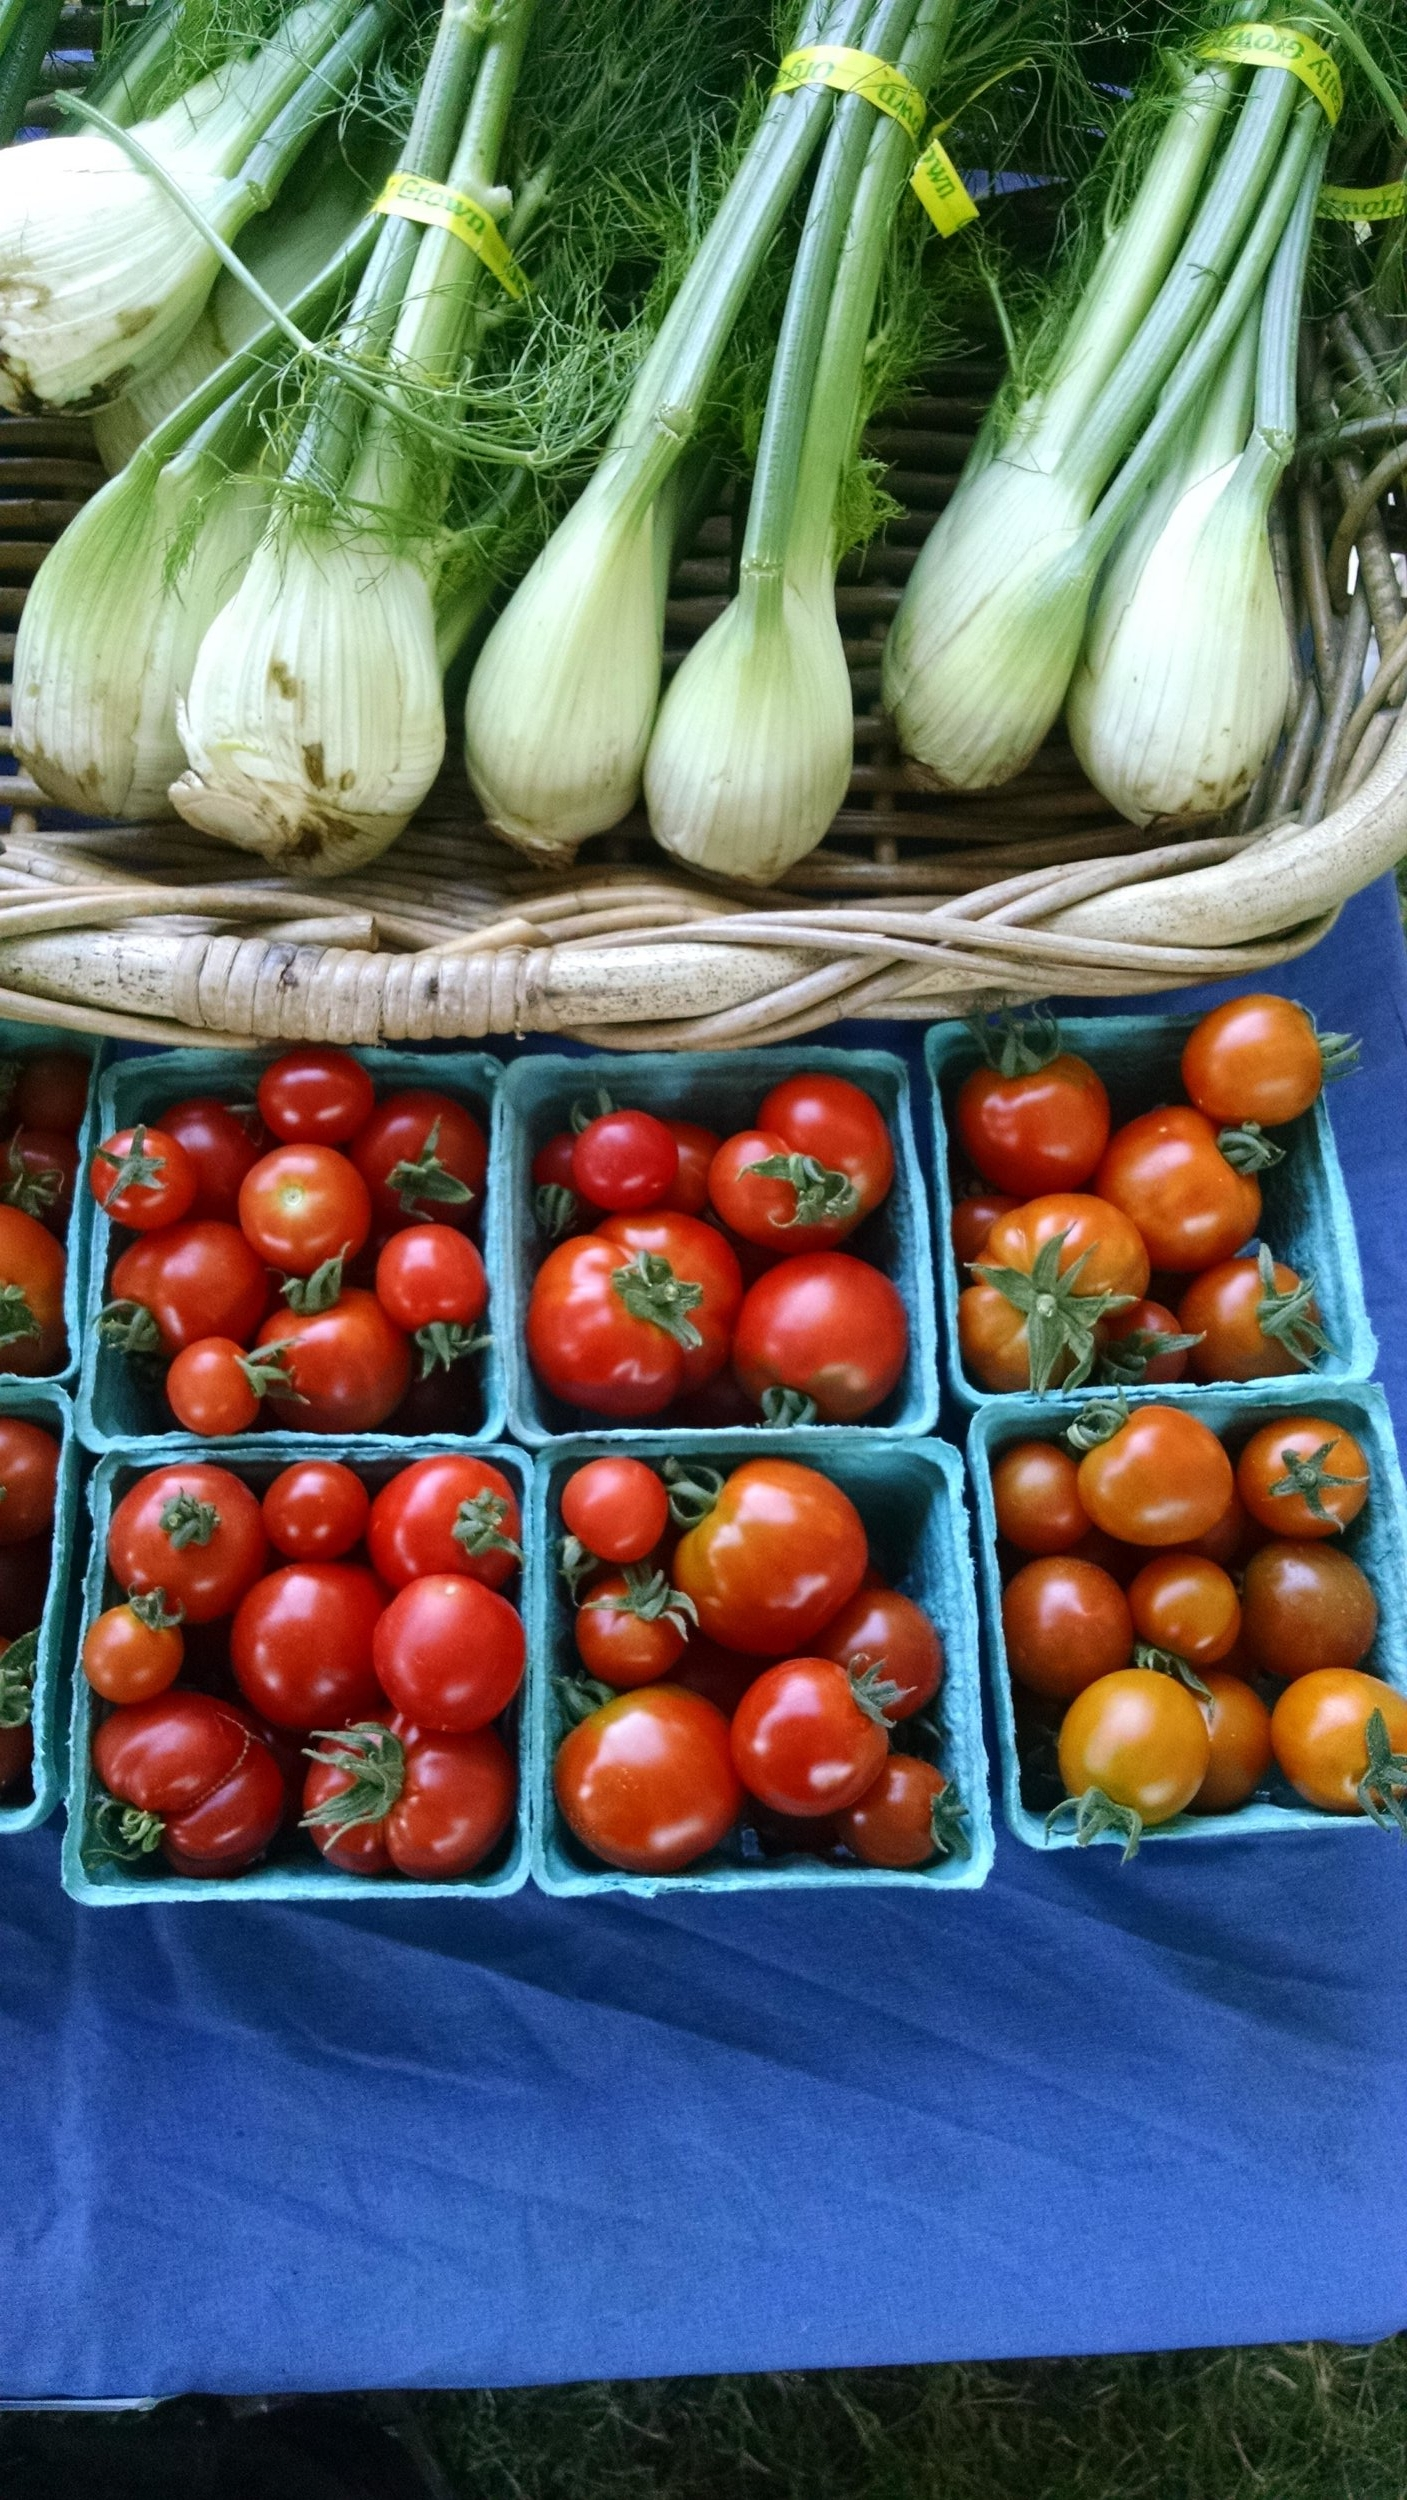 Fennel and tomatoes